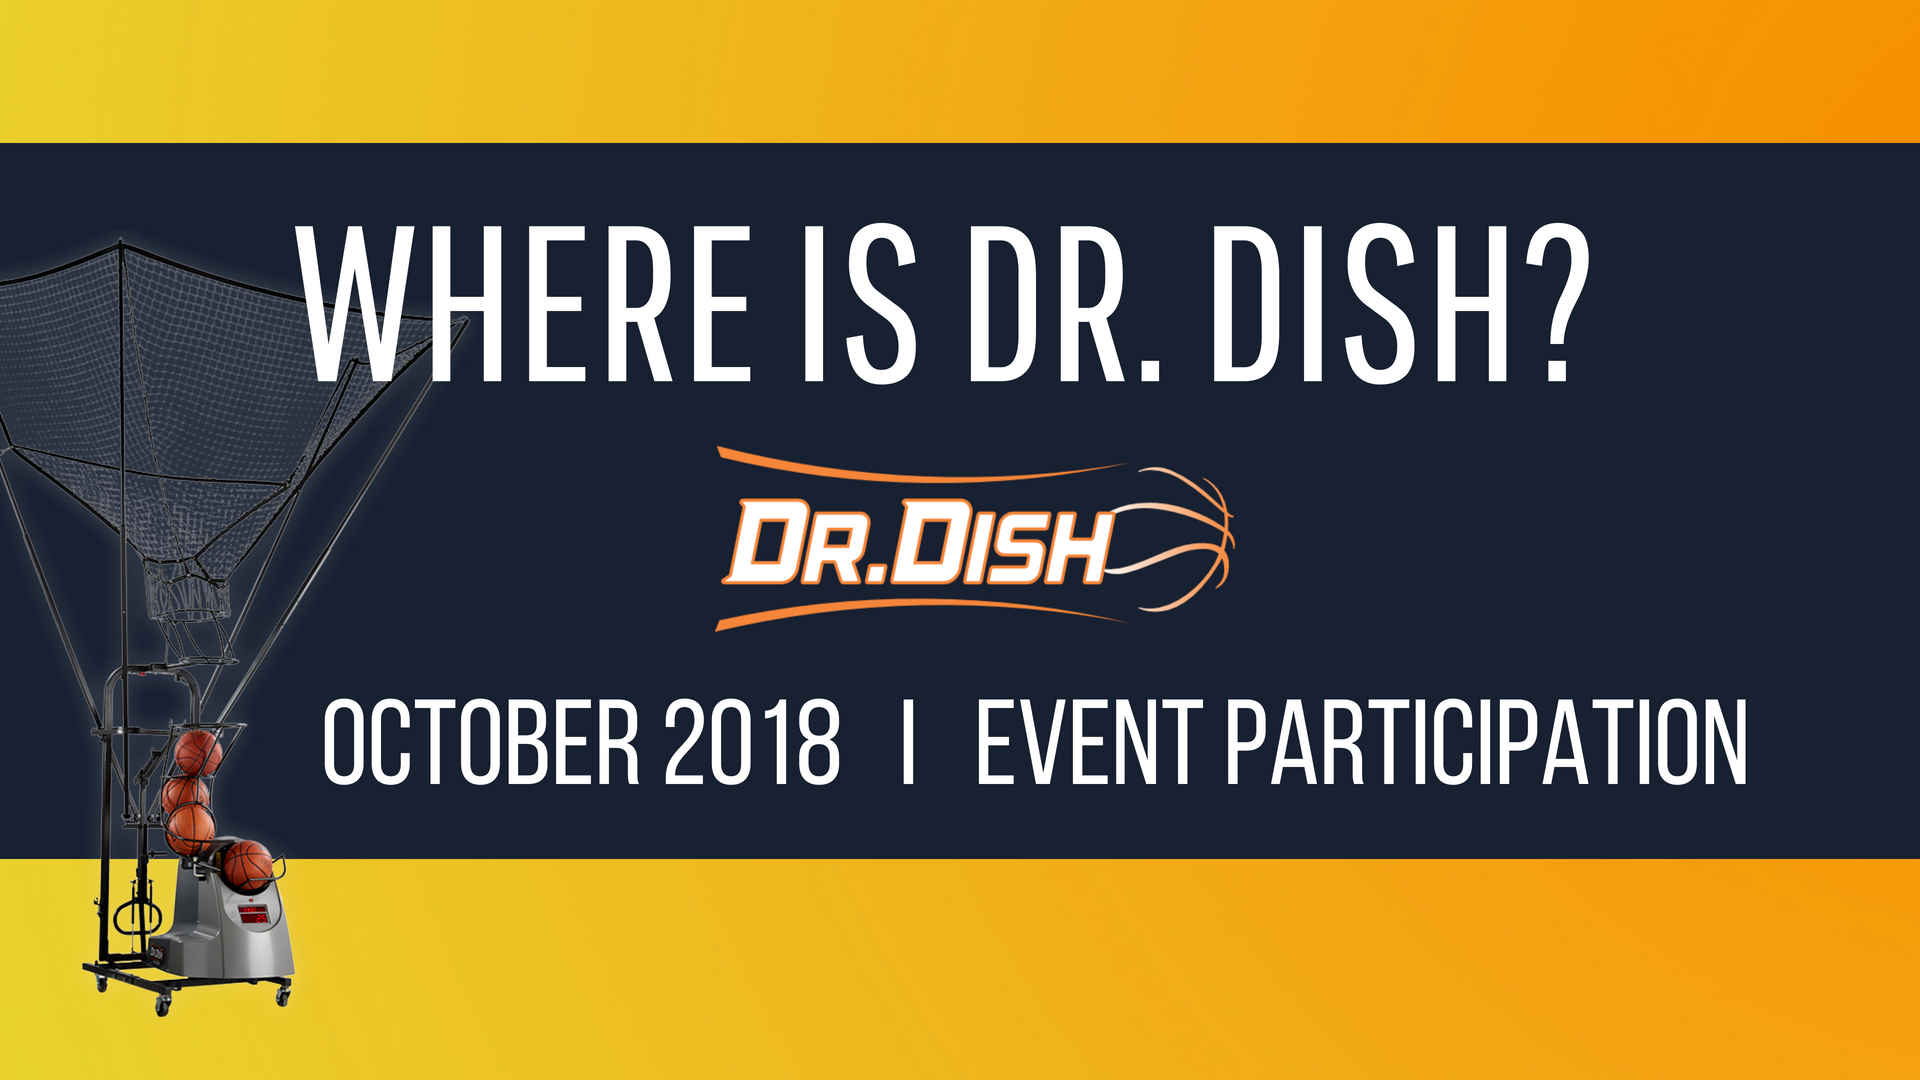 Where is Dr. dish_September 2018event participation (2)